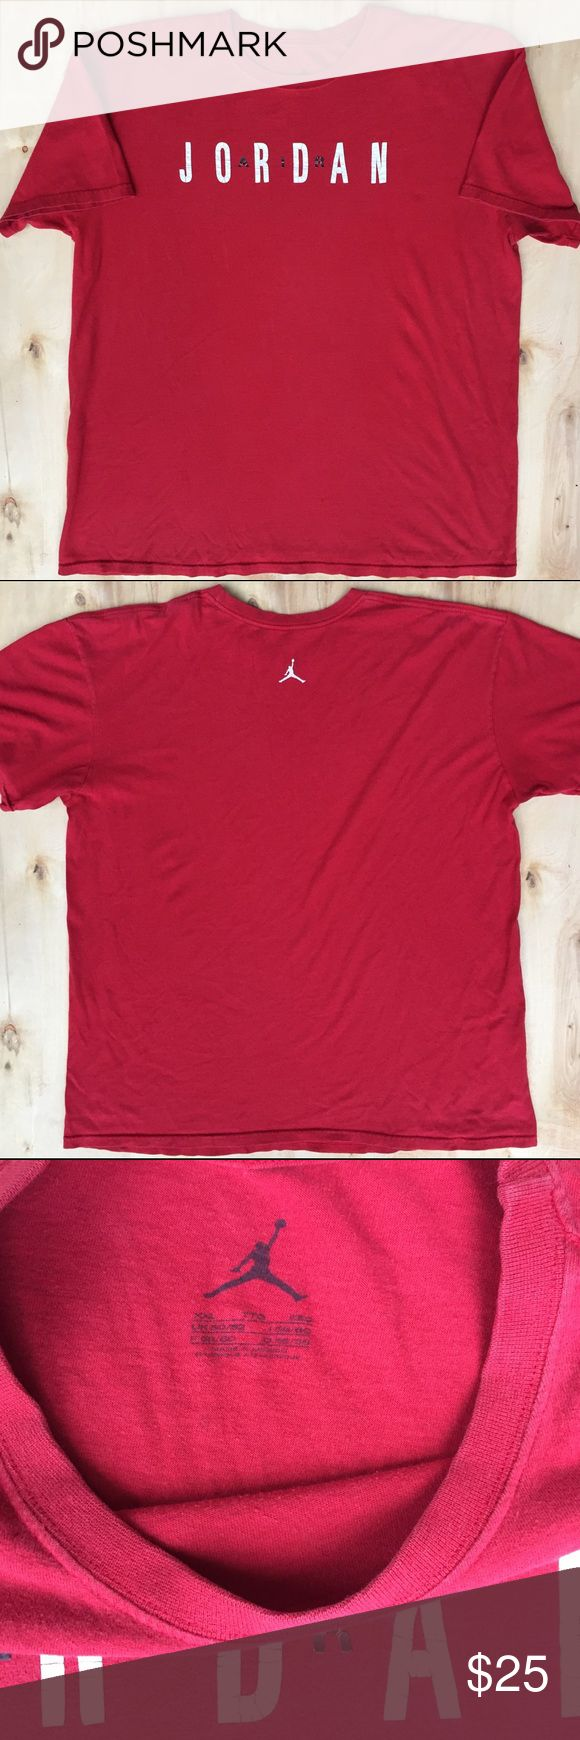 Air Jordan Chicago Bulls 90s vintage tee shirt XXL Cool vintage t Shirt a few pin holes and cracked letters for a retro look very rare Jordan Shirts Tees - Short Sleeve